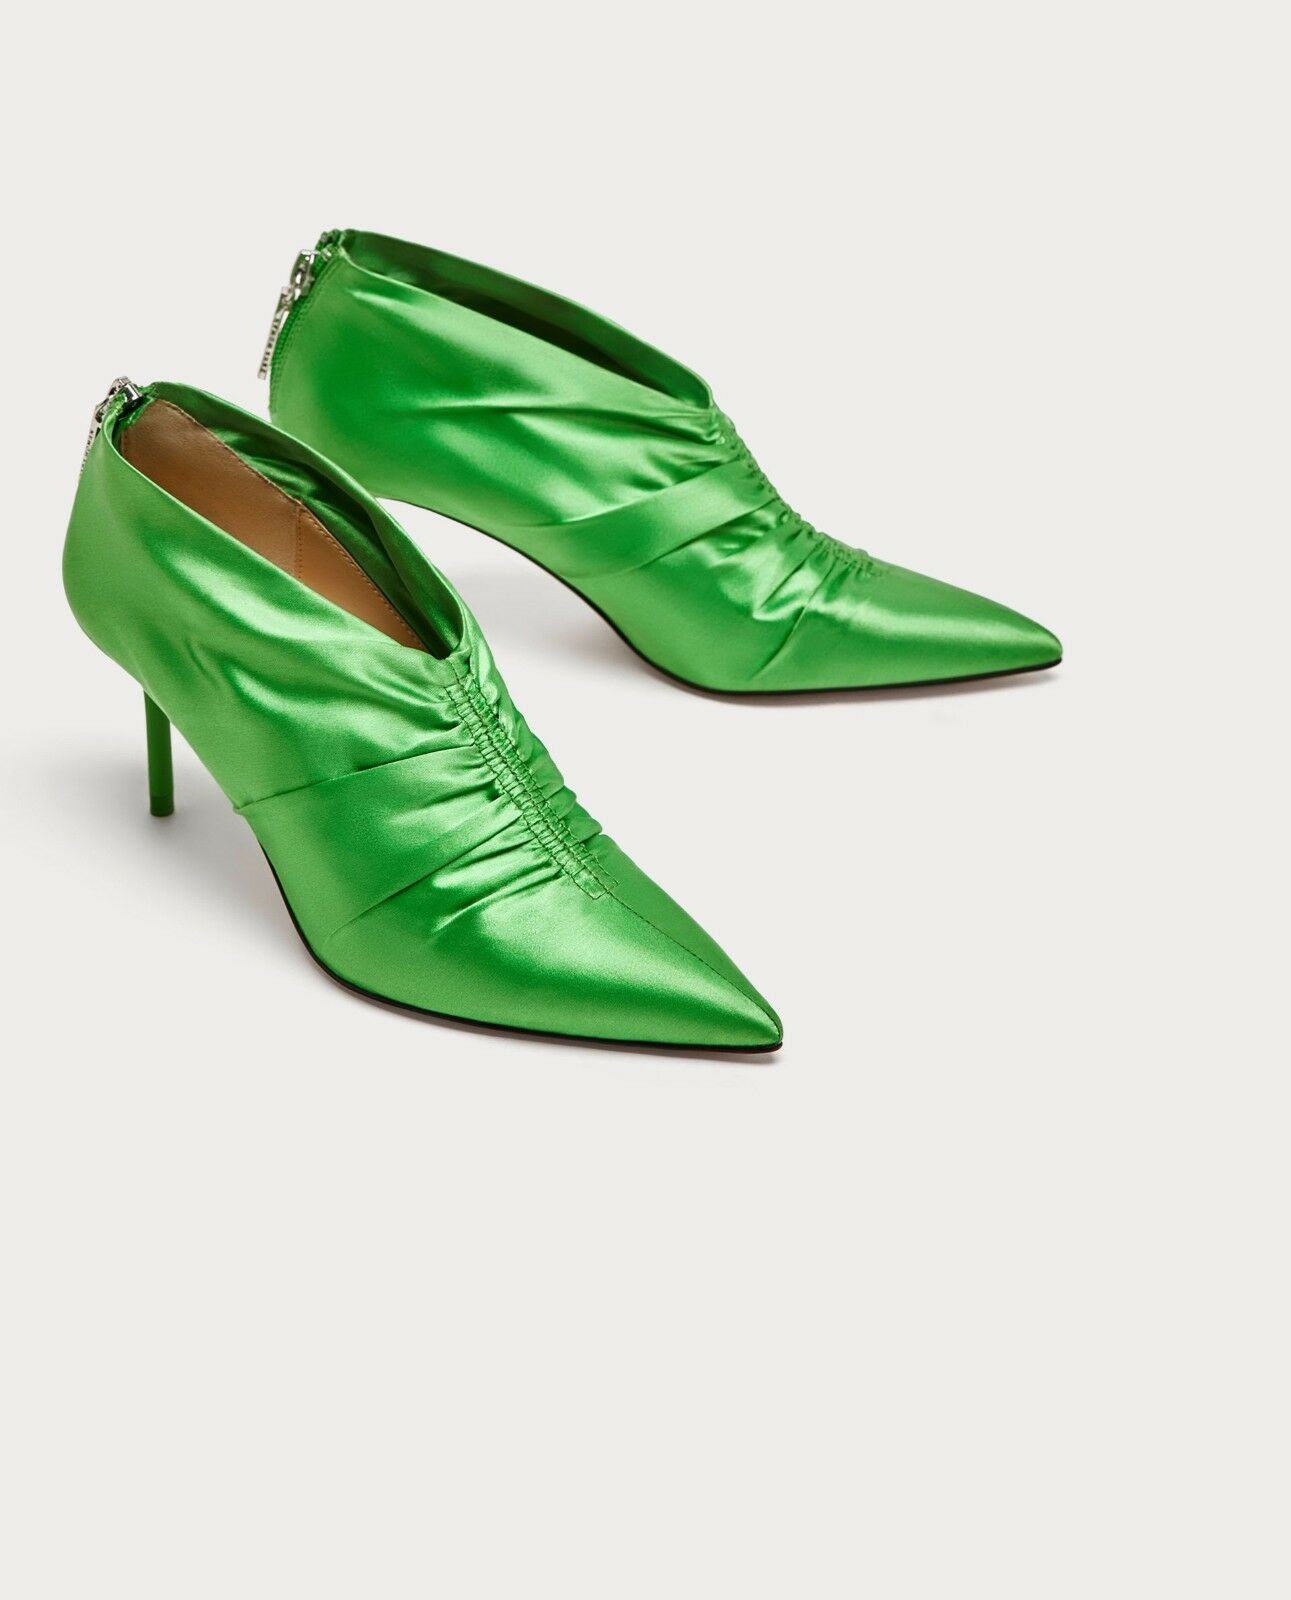 ZARA NEW HIGH HEEL ANKLE BOOTS WITH GATHEROT DETAIL GREEN 5120/201